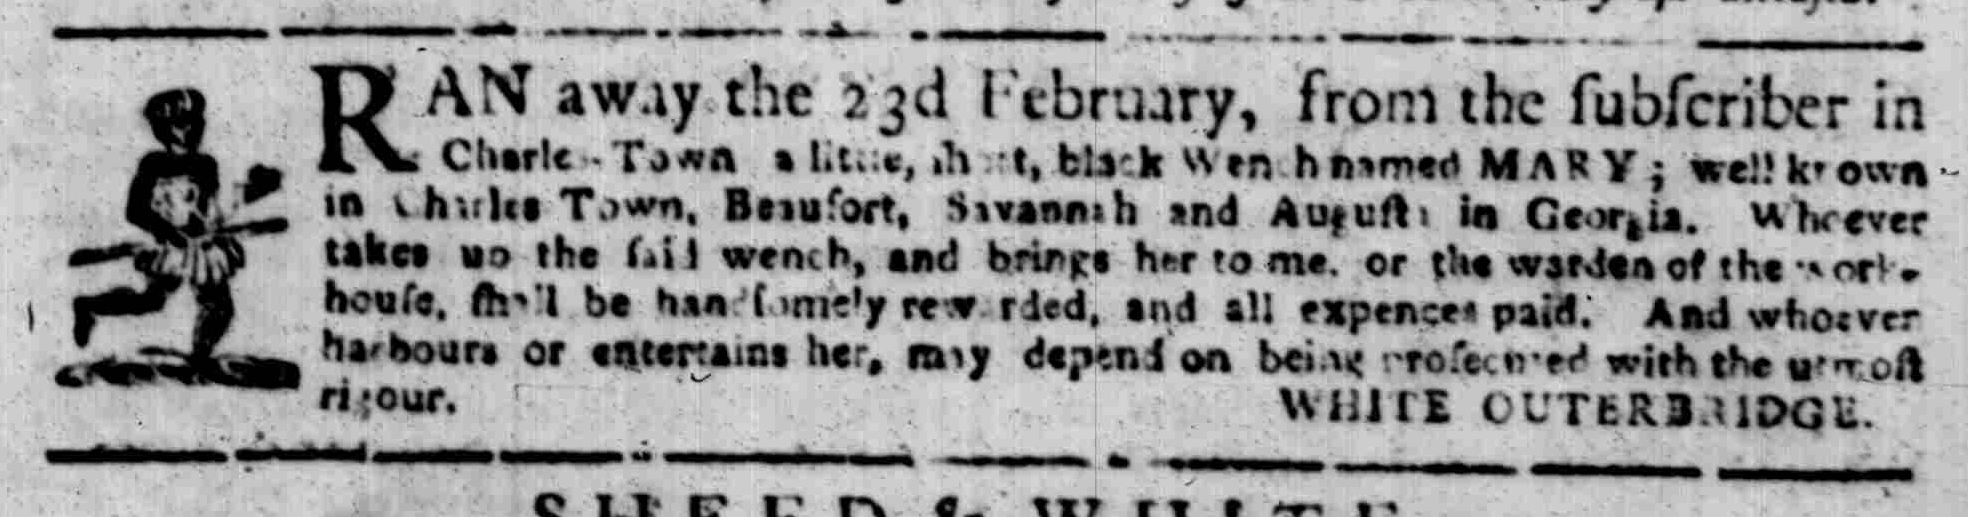 mar-9-south-carolina-gazette-slavery-7